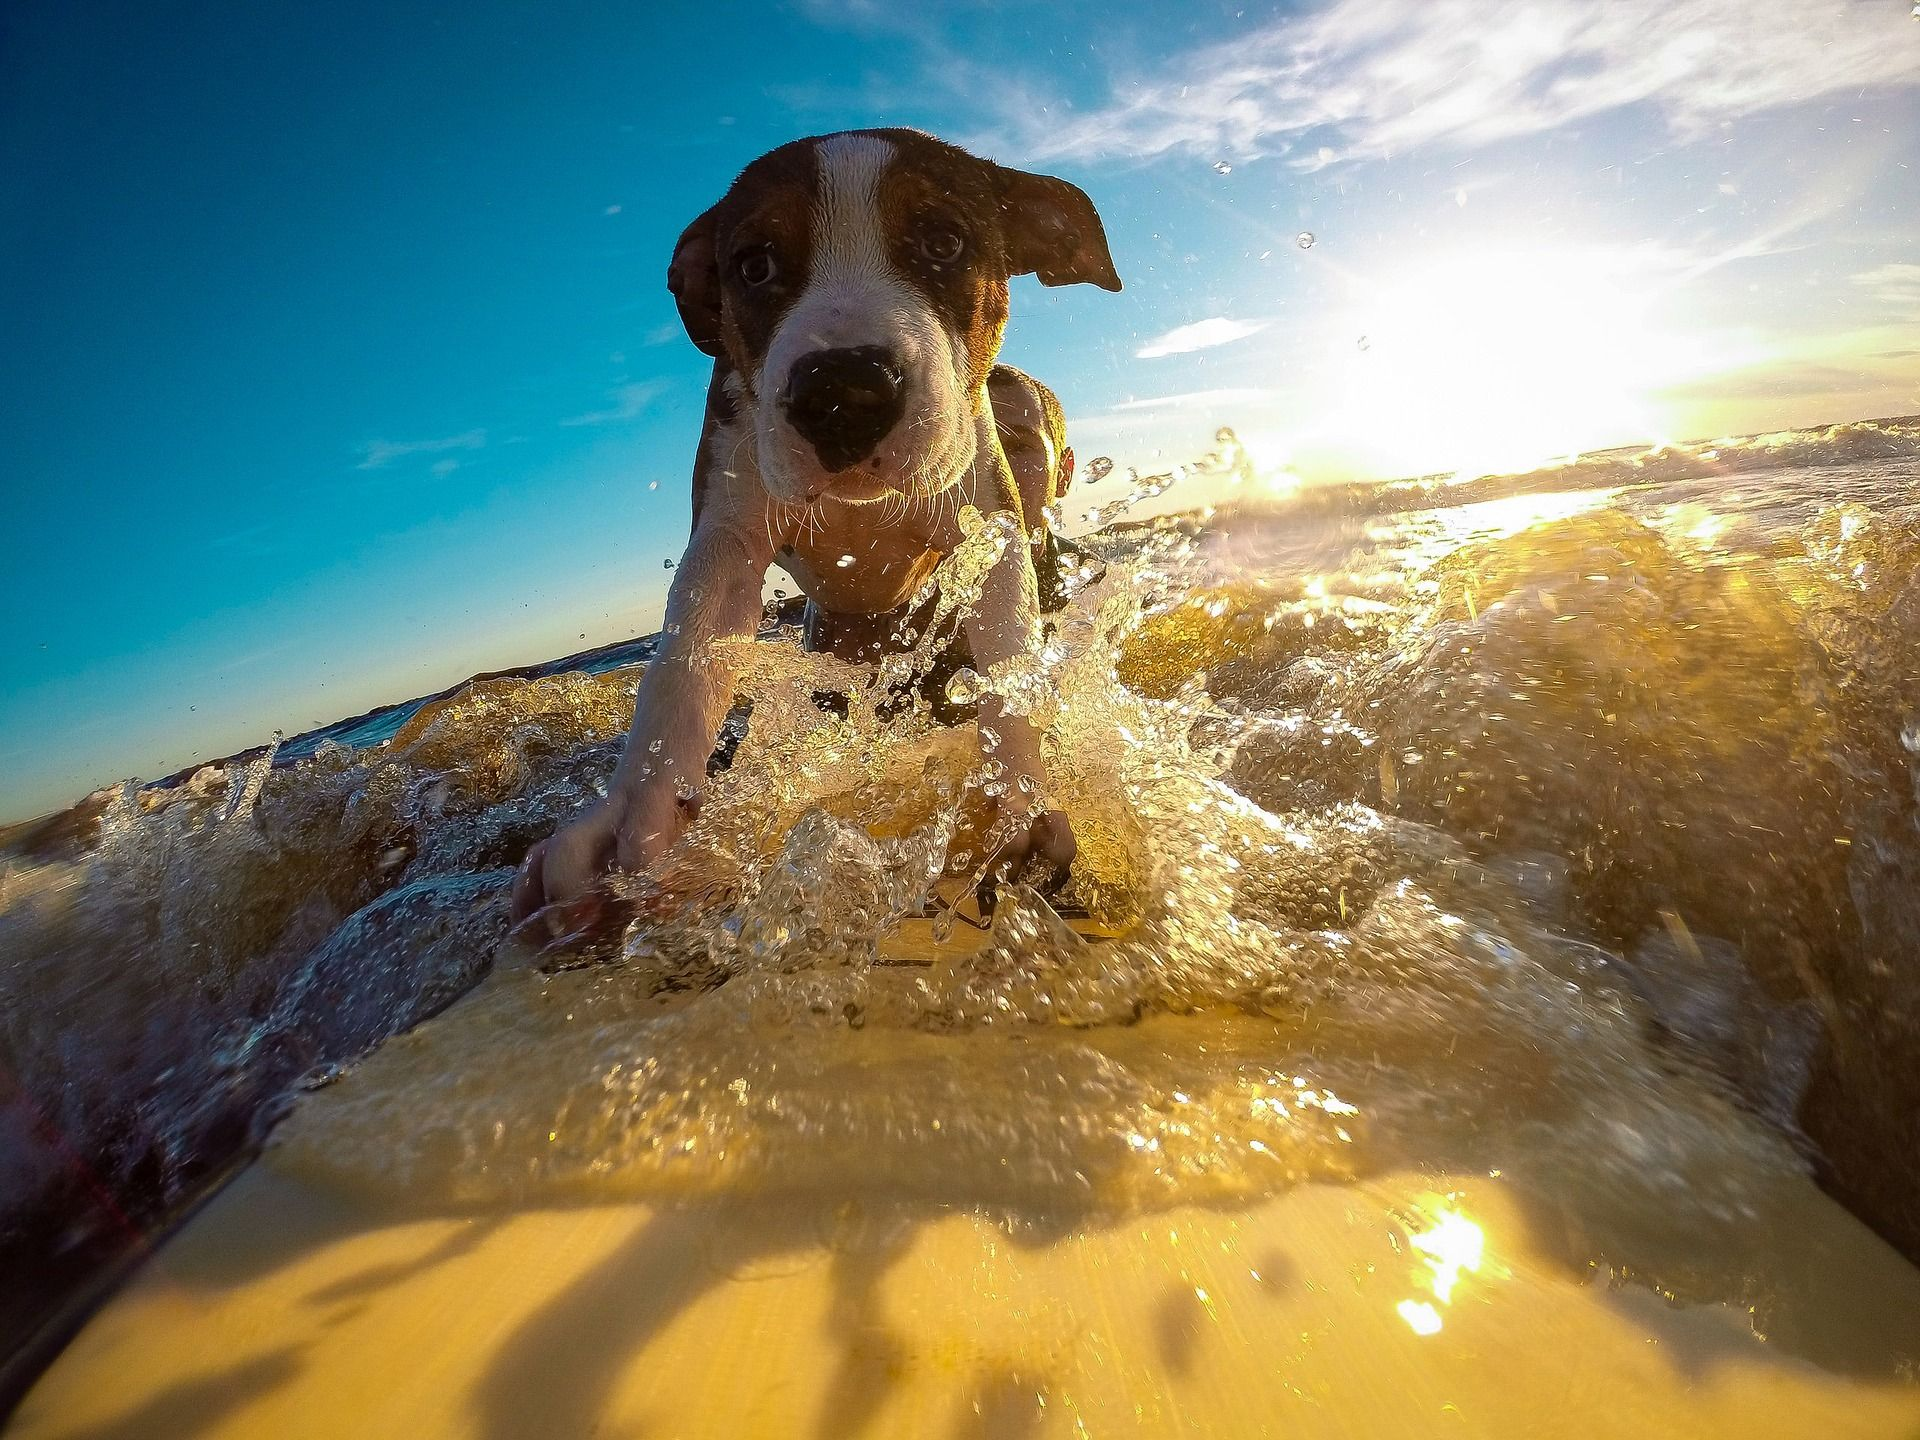 Champion Tandem Surfer Unofficially Breaks The Record For Most Dogs On A Surfboard Dog Friendly Vacation Heat Stroke In Dogs Pet Safety